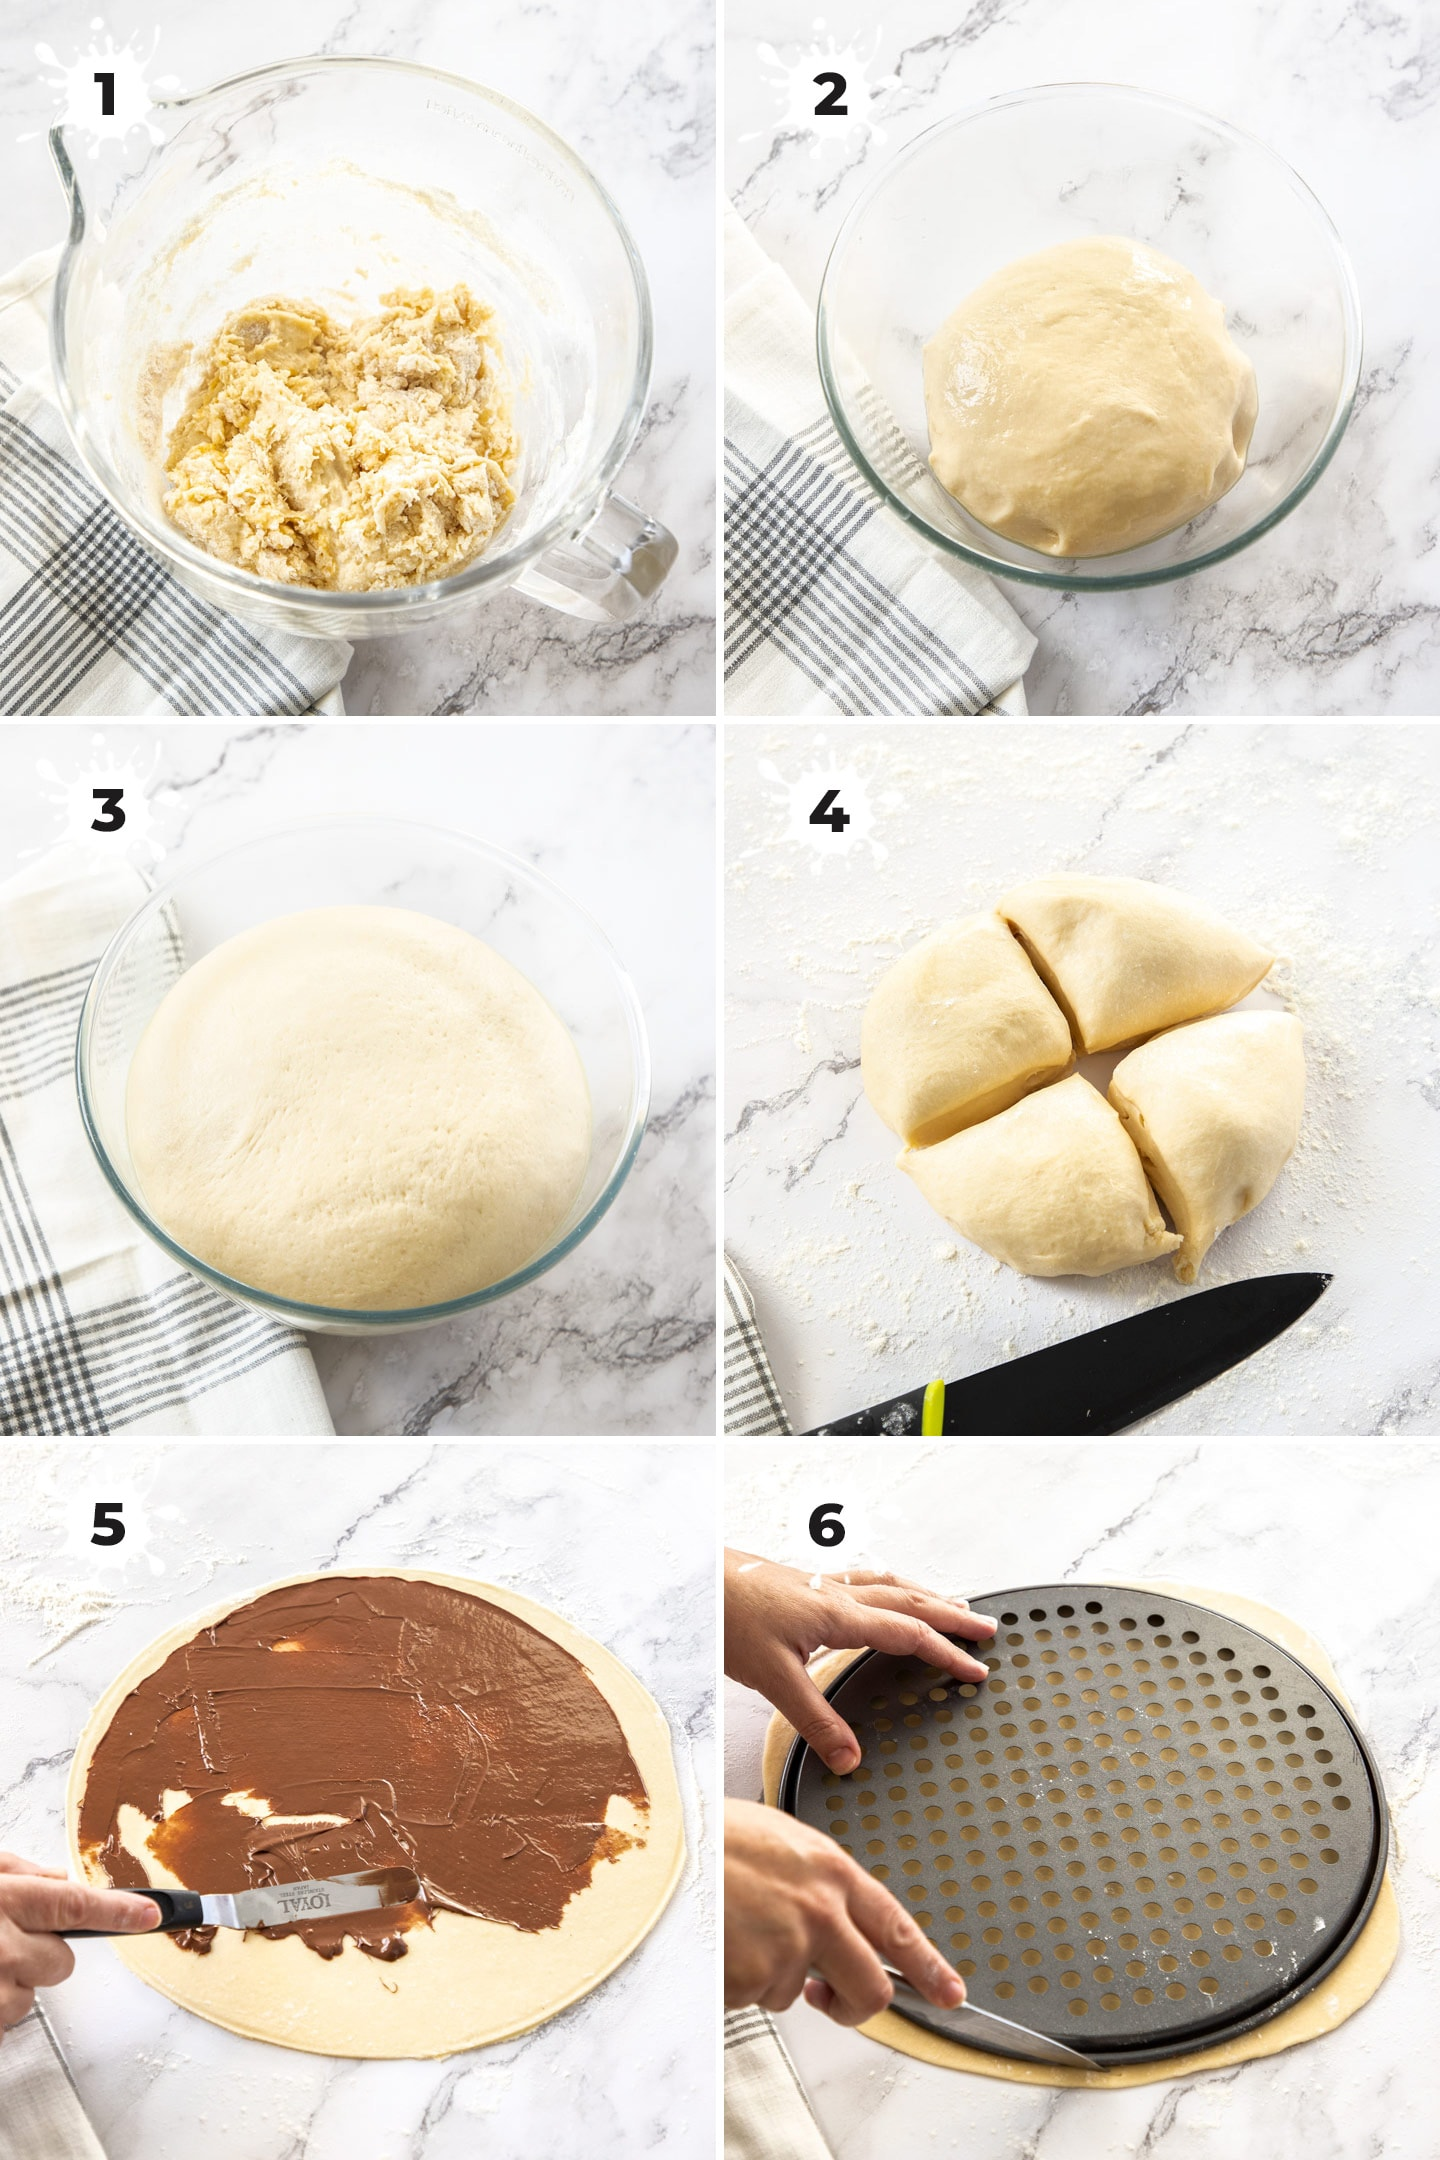 6 images showing dough being made in a glass bowl, the rolled out